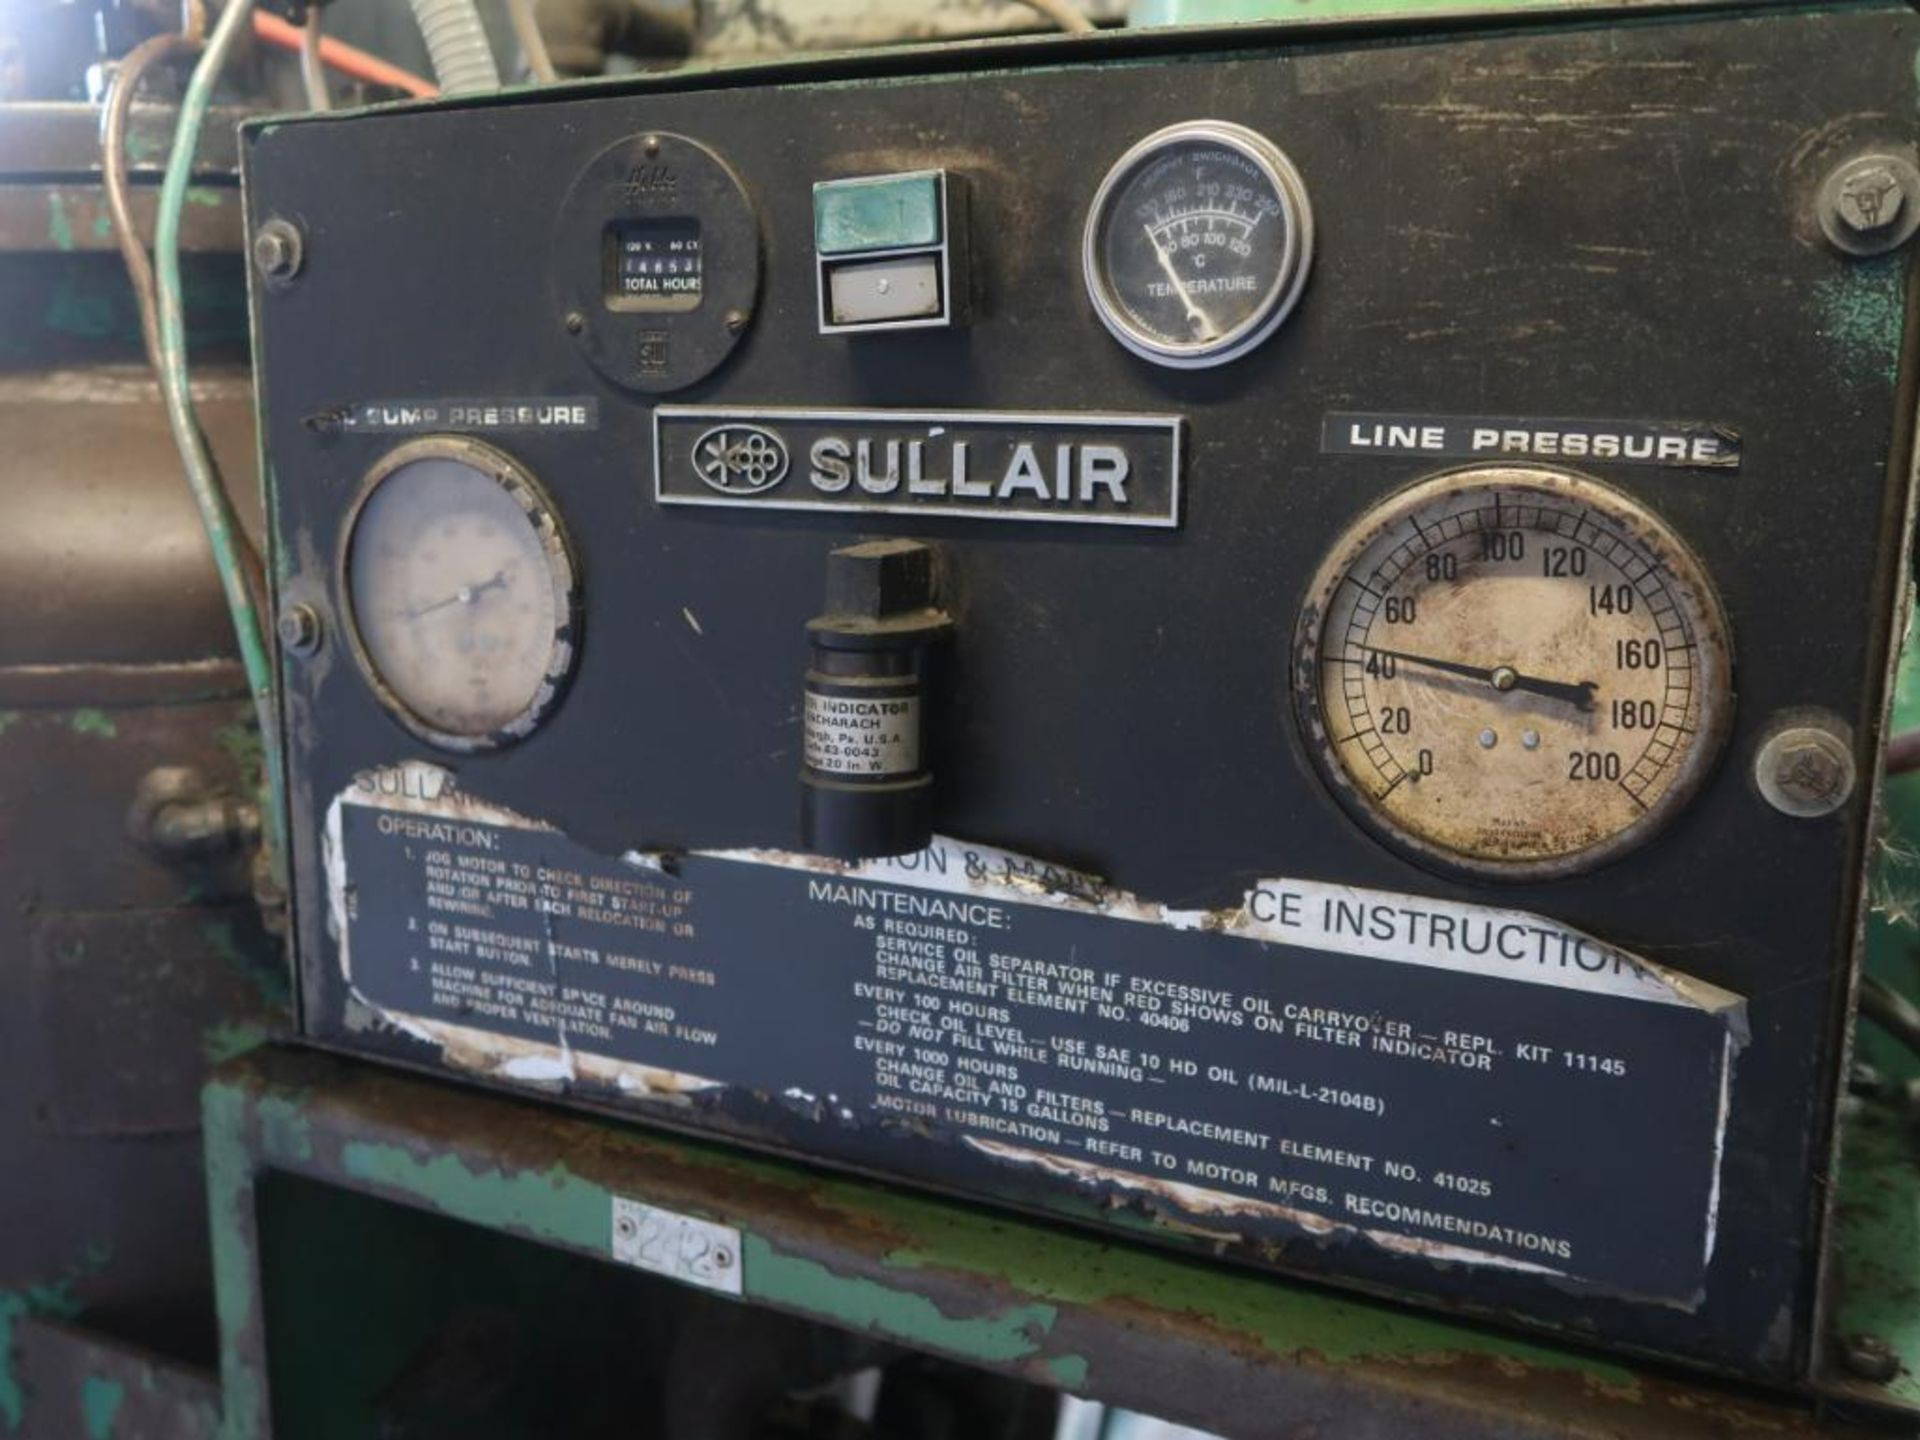 Lot 63 - Sullair 100 HP Air Compressor Model 25-100H, S/N 6492 GLD